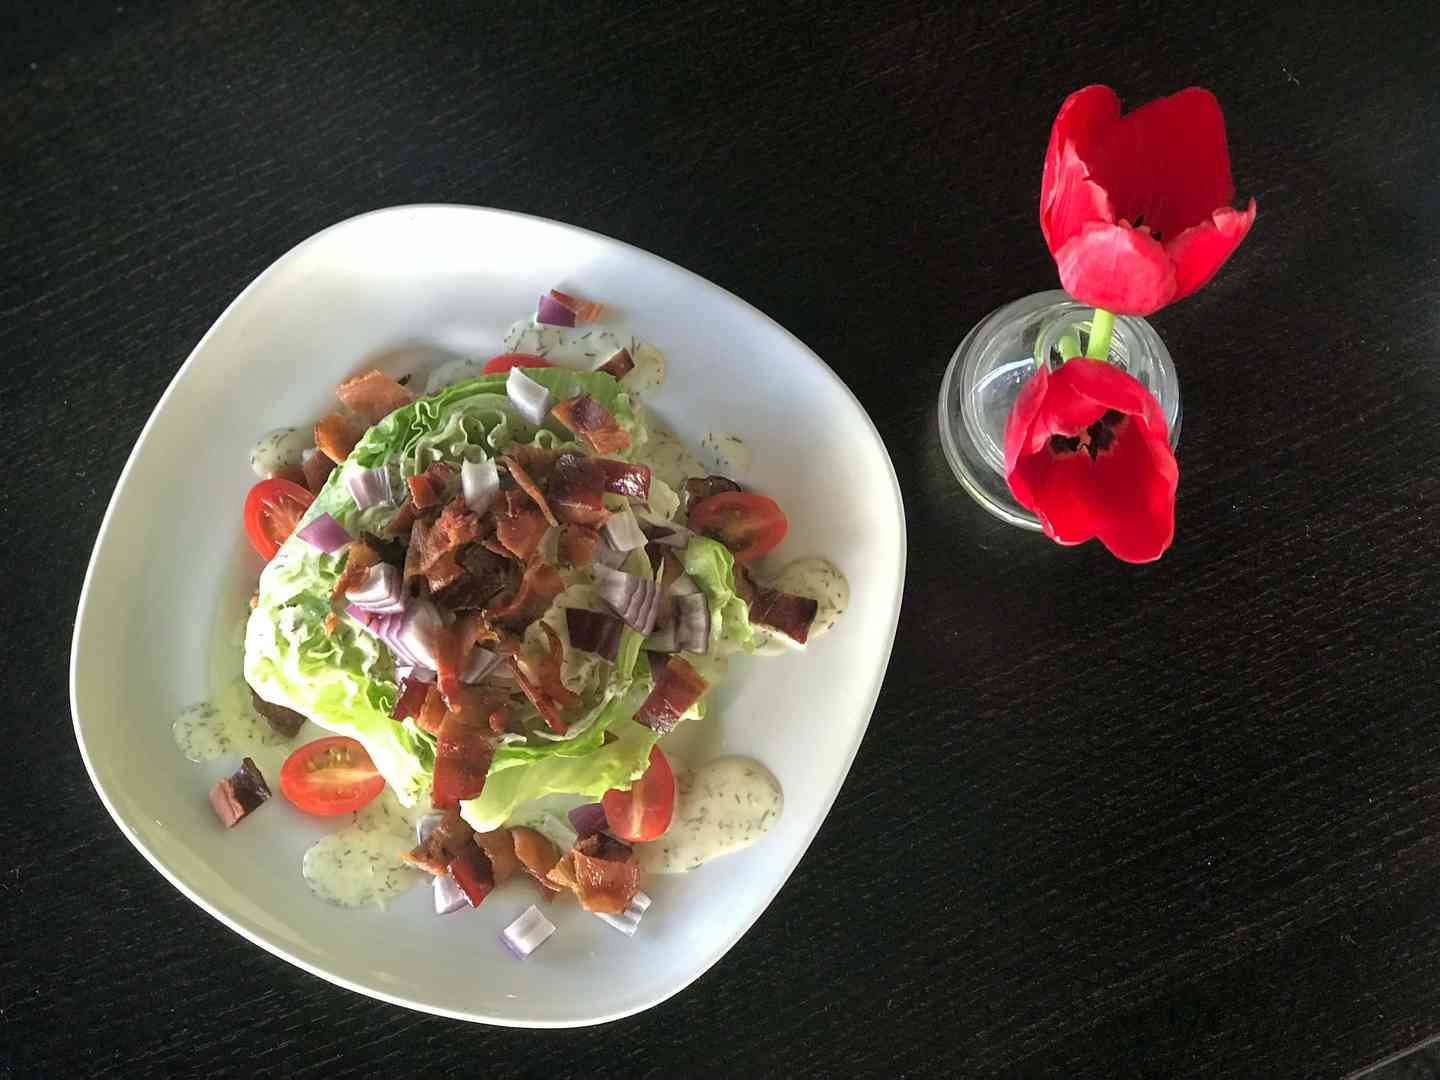 *Baby Iceberg Wedge Salad w/ Smoked Bacon, Red Onions, Cherry Tomatoes & Blue Cheese Dressing